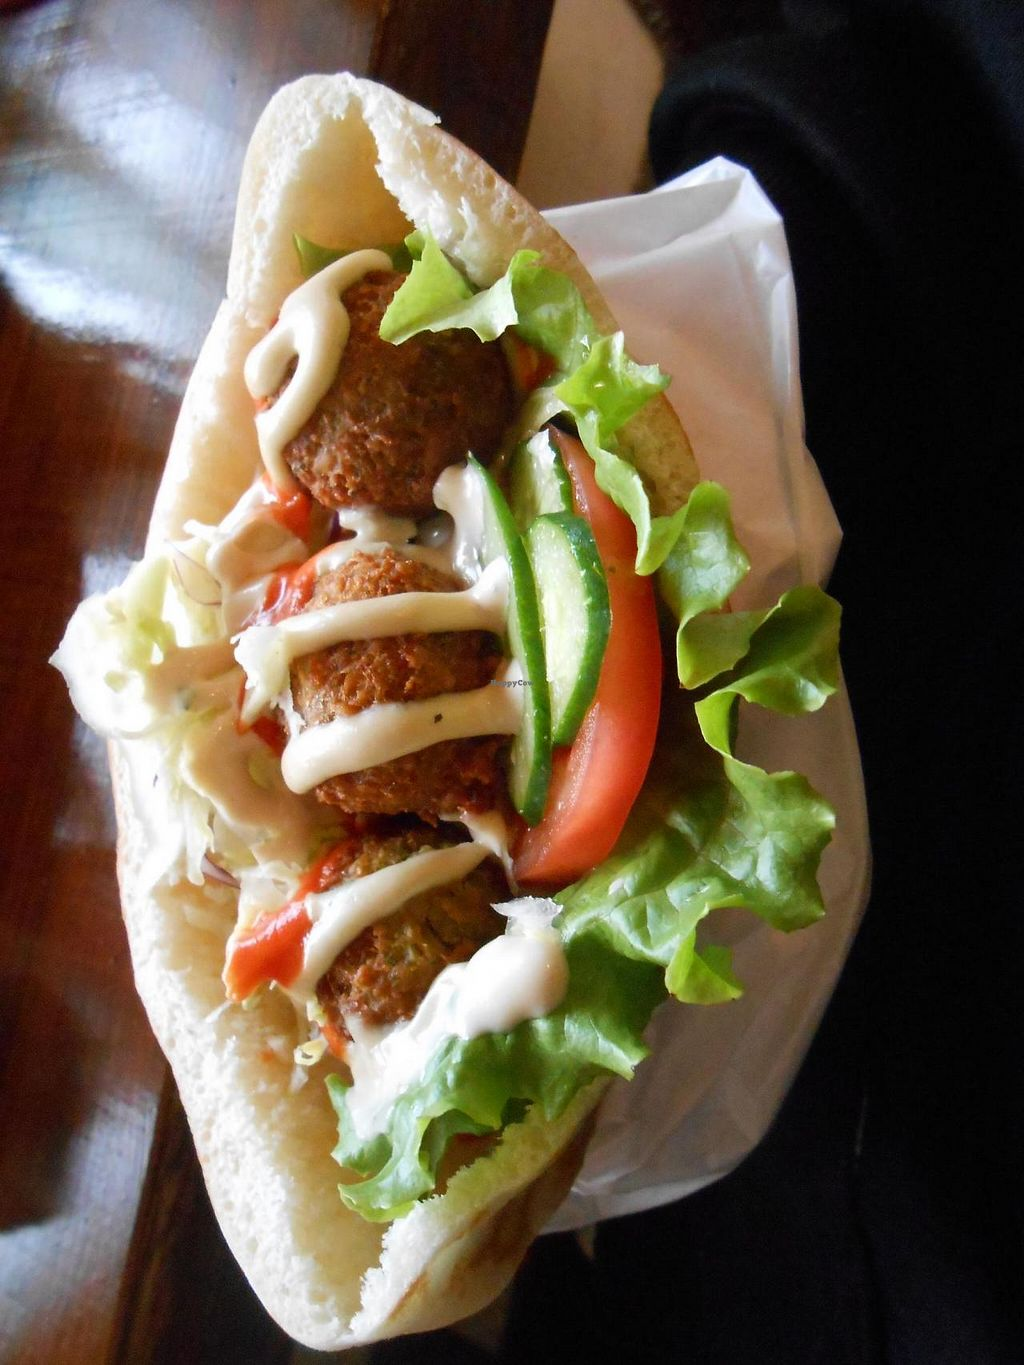 """Photo of Falafel Garden  by <a href=""""/members/profile/Den28"""">Den28</a> <br/>Falafel Garden <br/> June 7, 2015  - <a href='/contact/abuse/image/26257/105075'>Report</a>"""